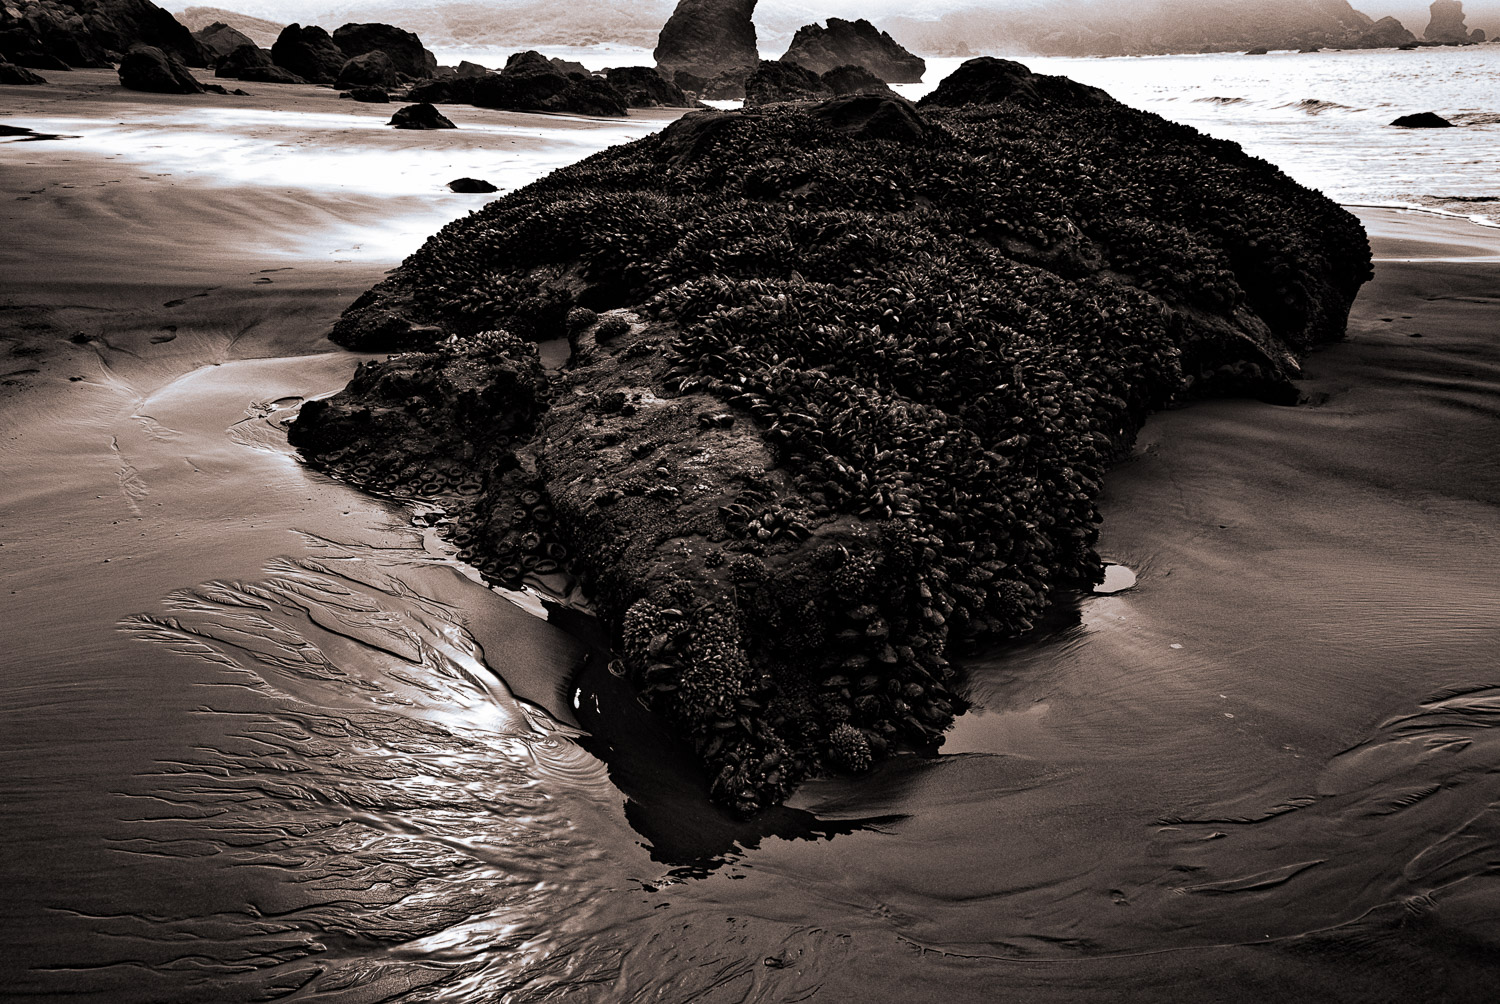 Mussel Rocks, Muir Beach | Mark LIndsay